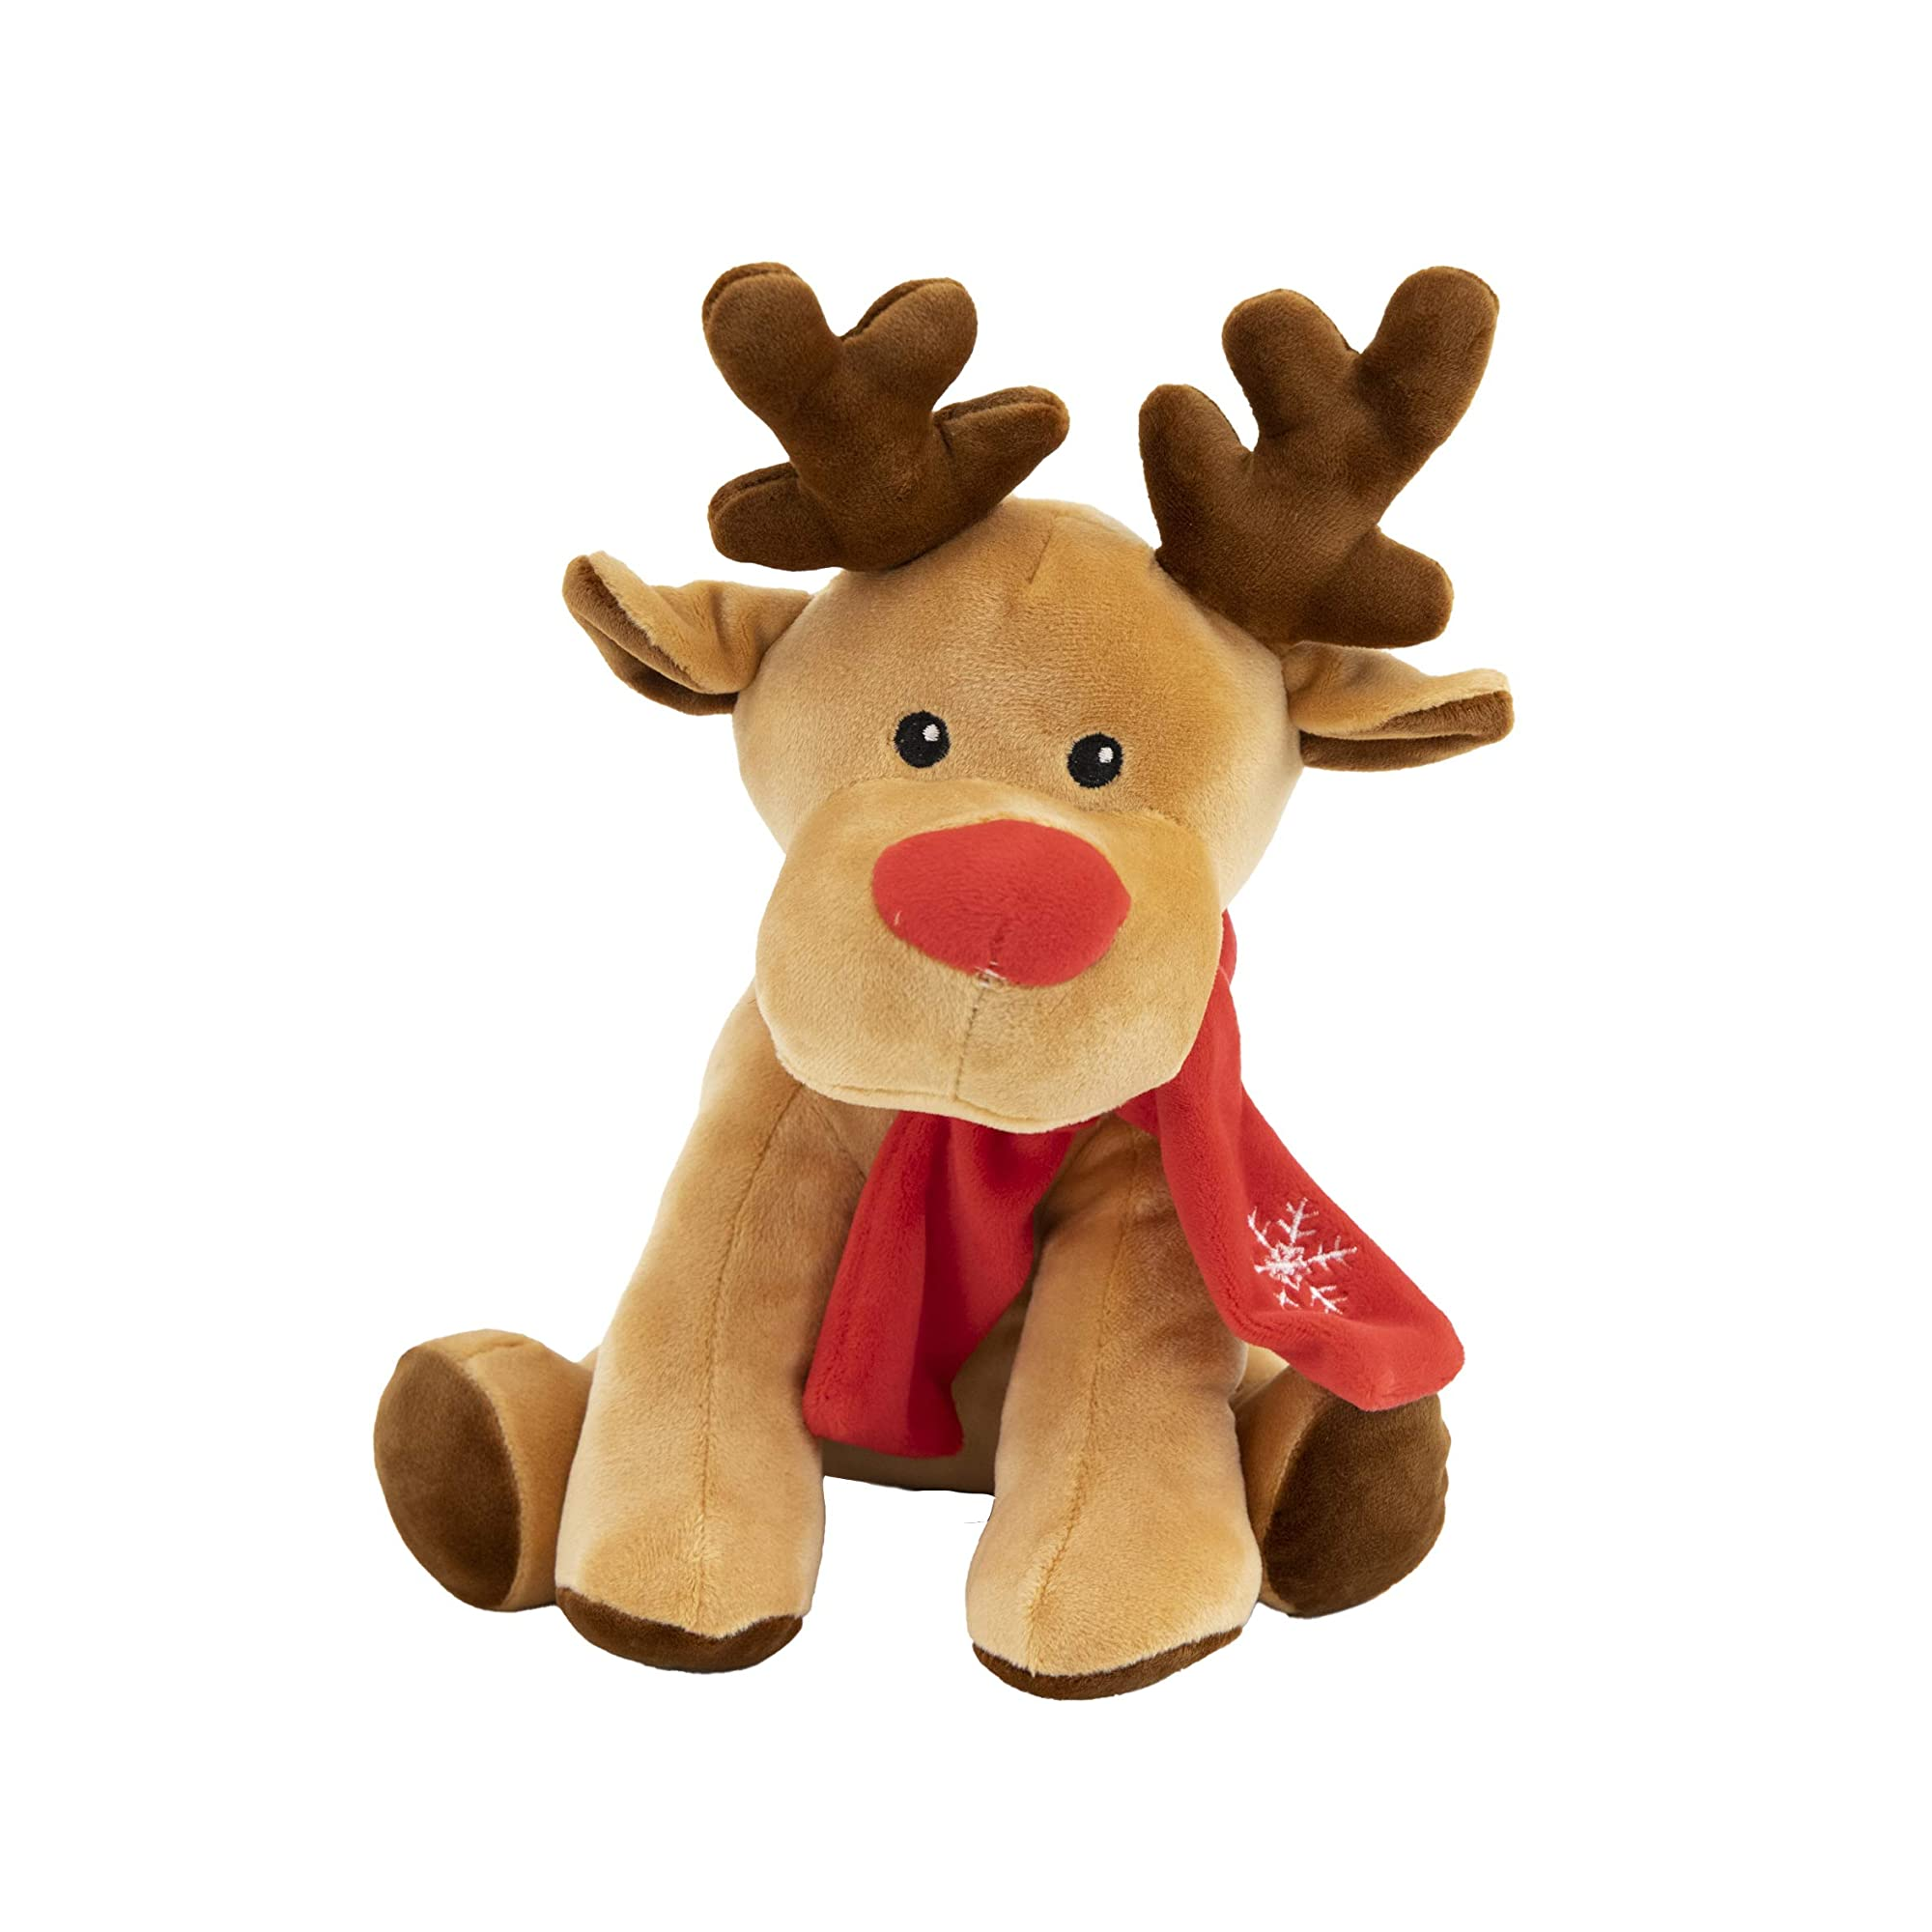 9020store Christmas Reindeer Stuffed Animal - Cute Plushies for Adults and Kids - Adorable, Soft Festive Reindeer with Scarf